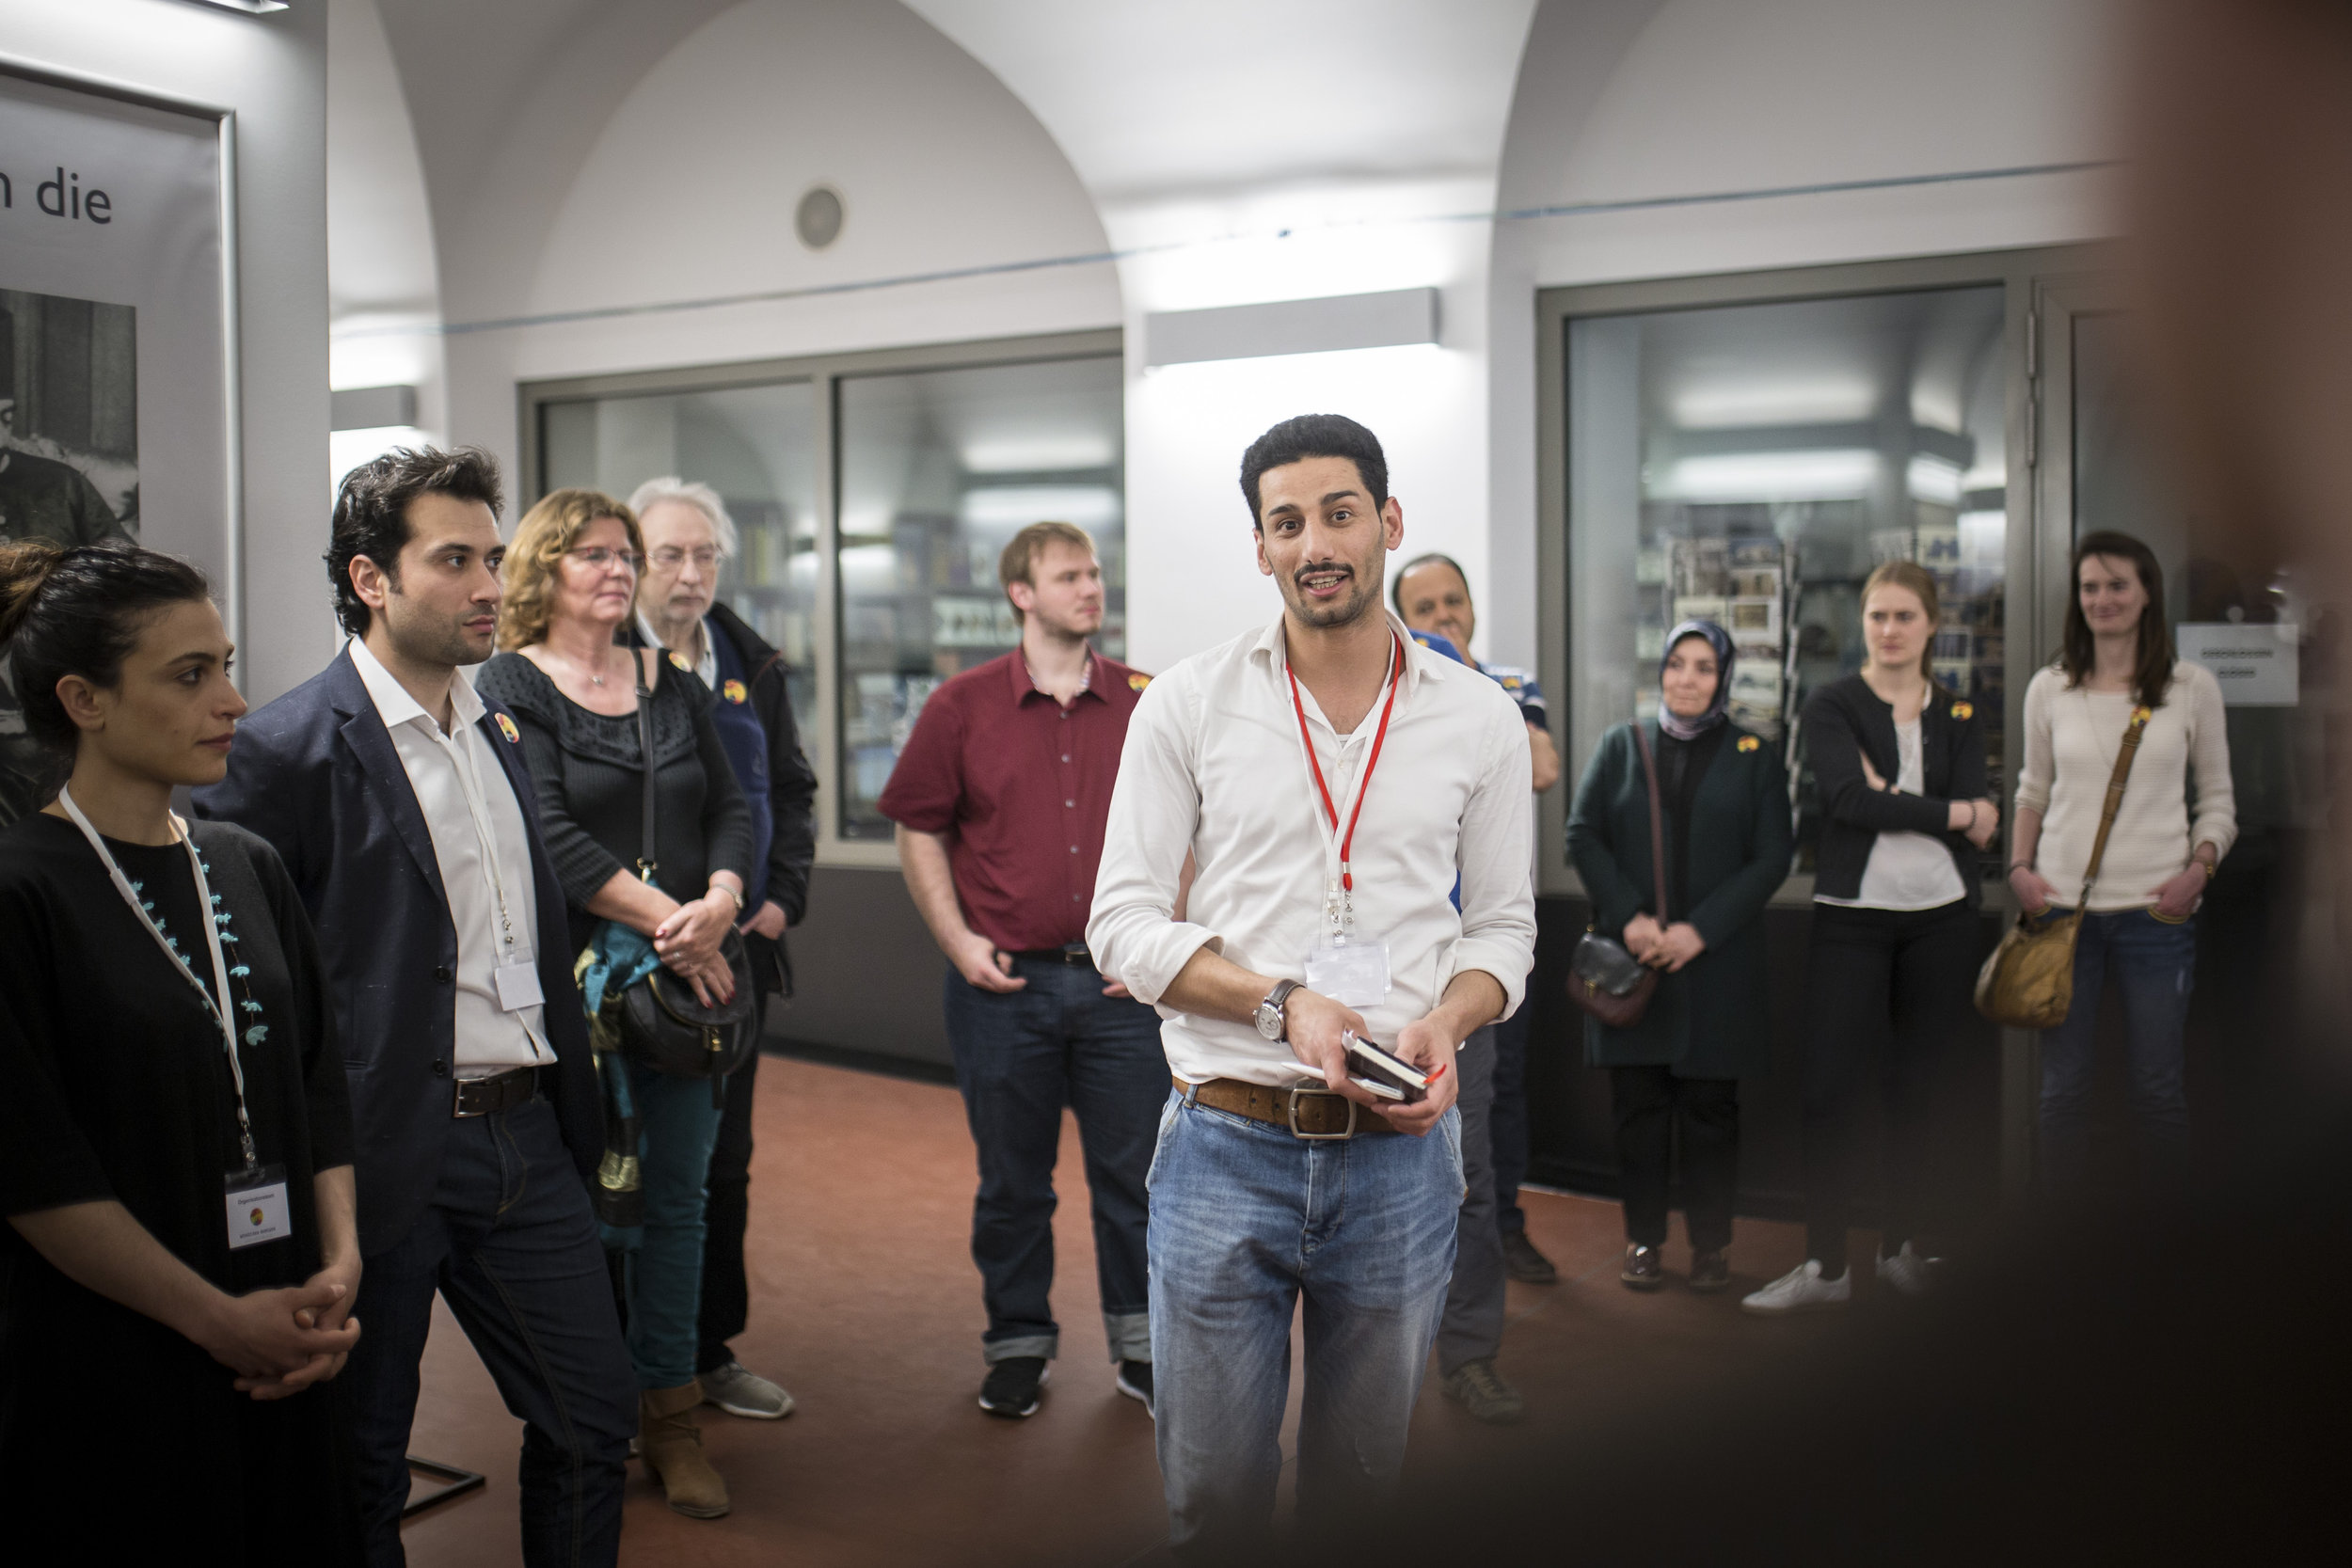 Hussam Zahim Mohammed starts giving a guided tour at the Pergamon Museum. ©Photothek - Multaka Project